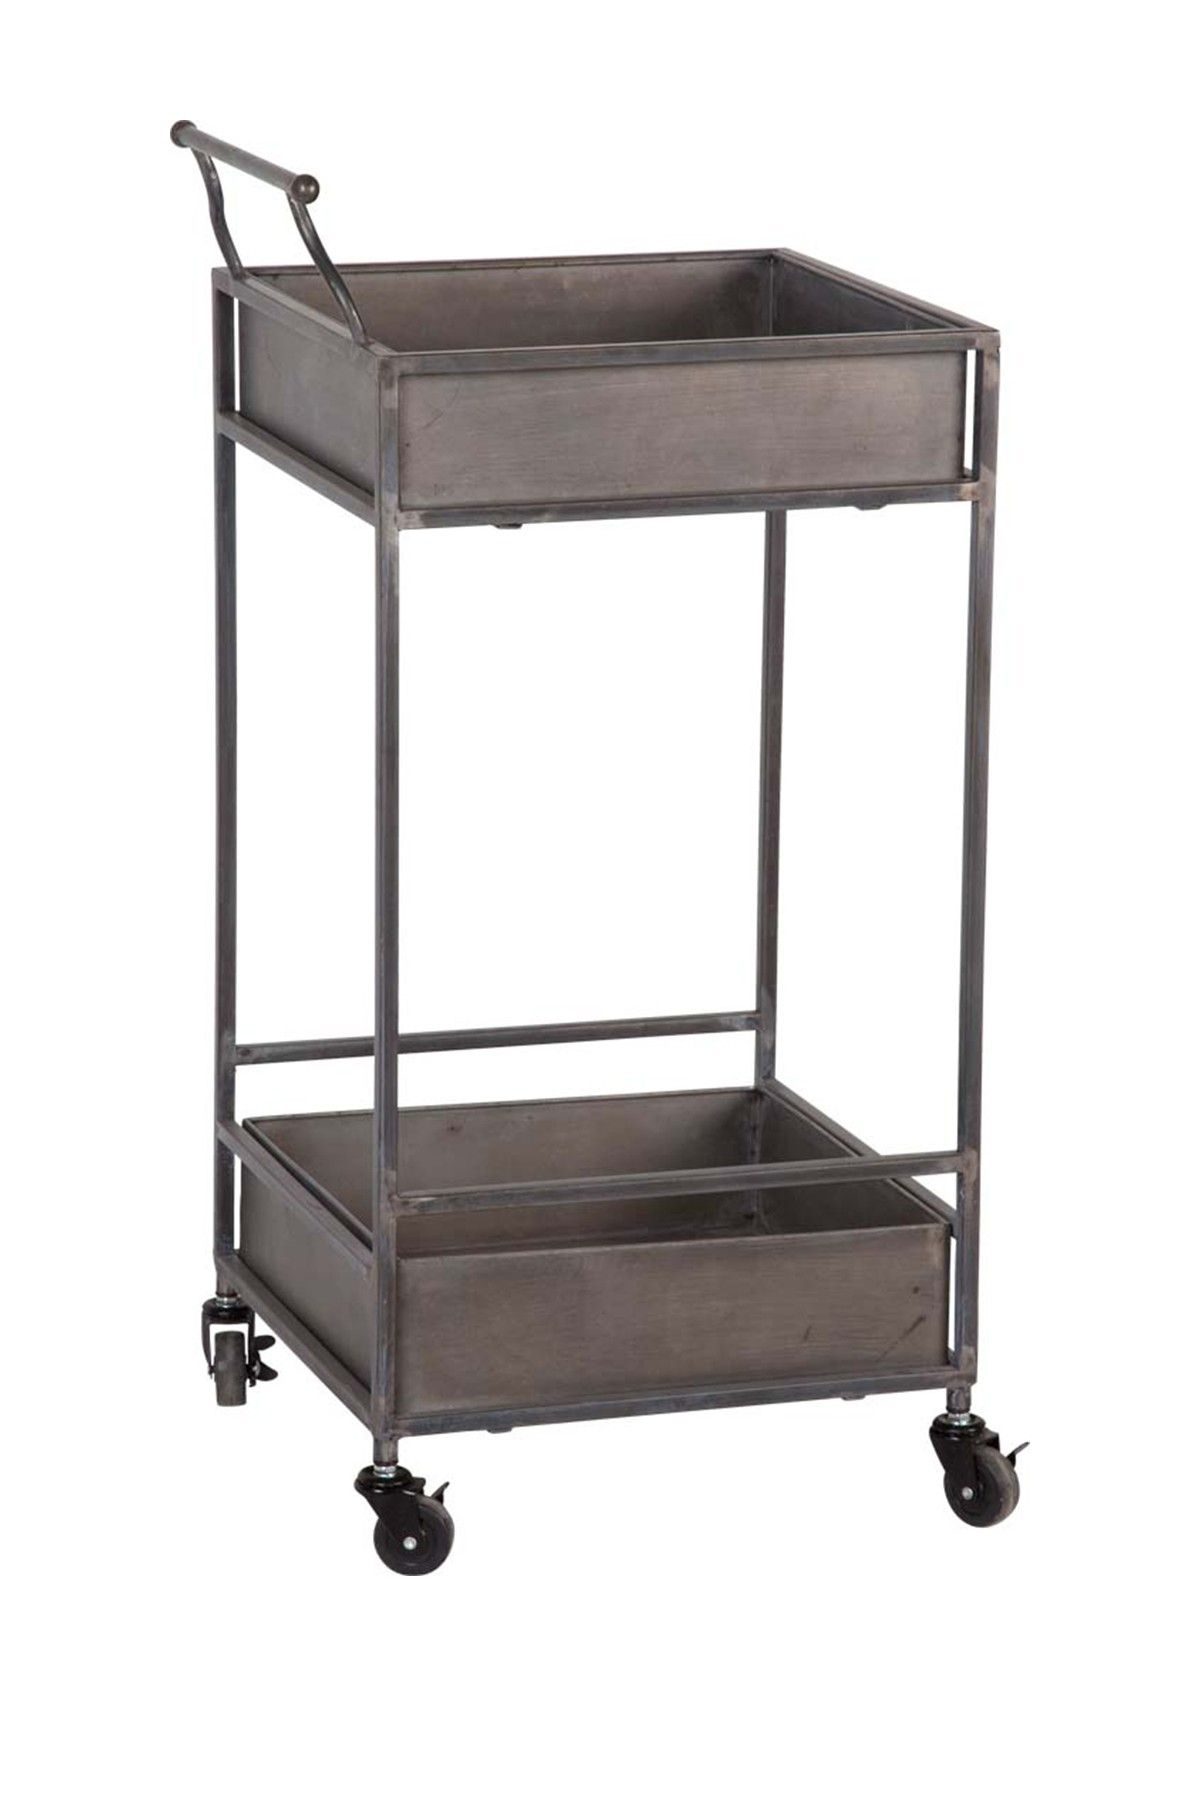 Greenock metal cart table design pinterest metal cart metals